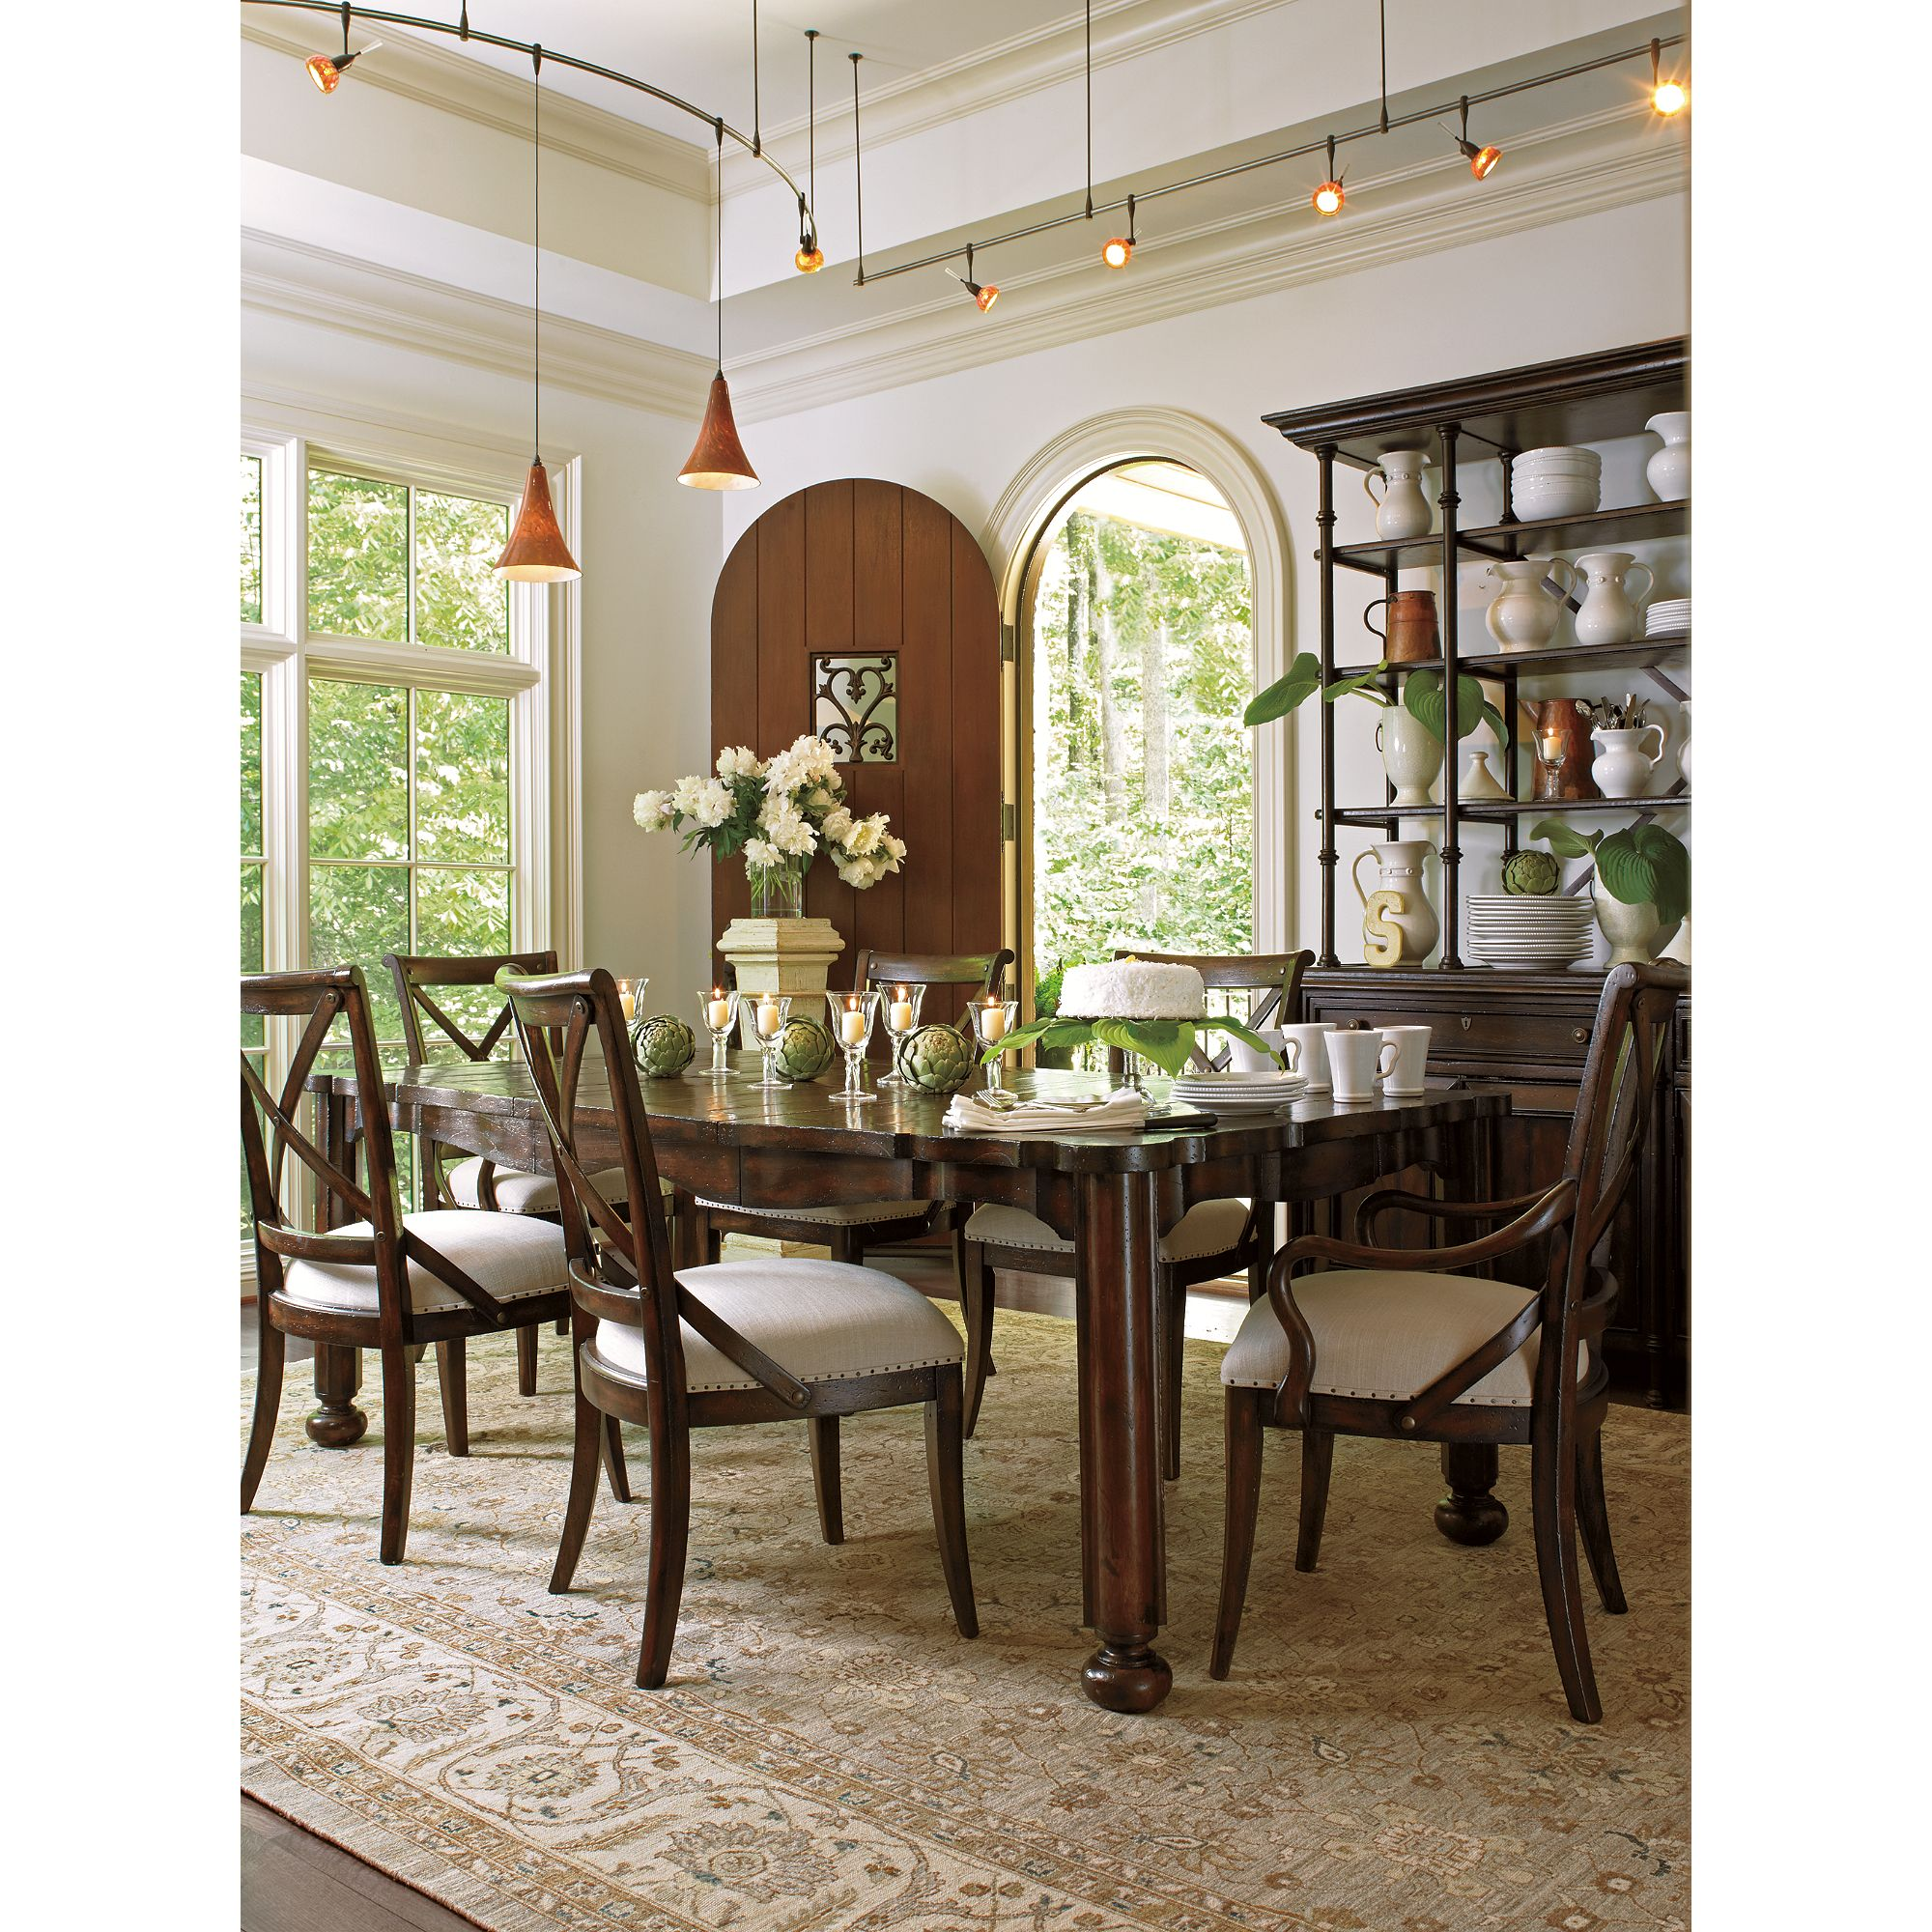 Nice Good At Home Furniture Utah 66 For Small Home Decoration Endearing Stanley Dining Room Set Design Inspiration